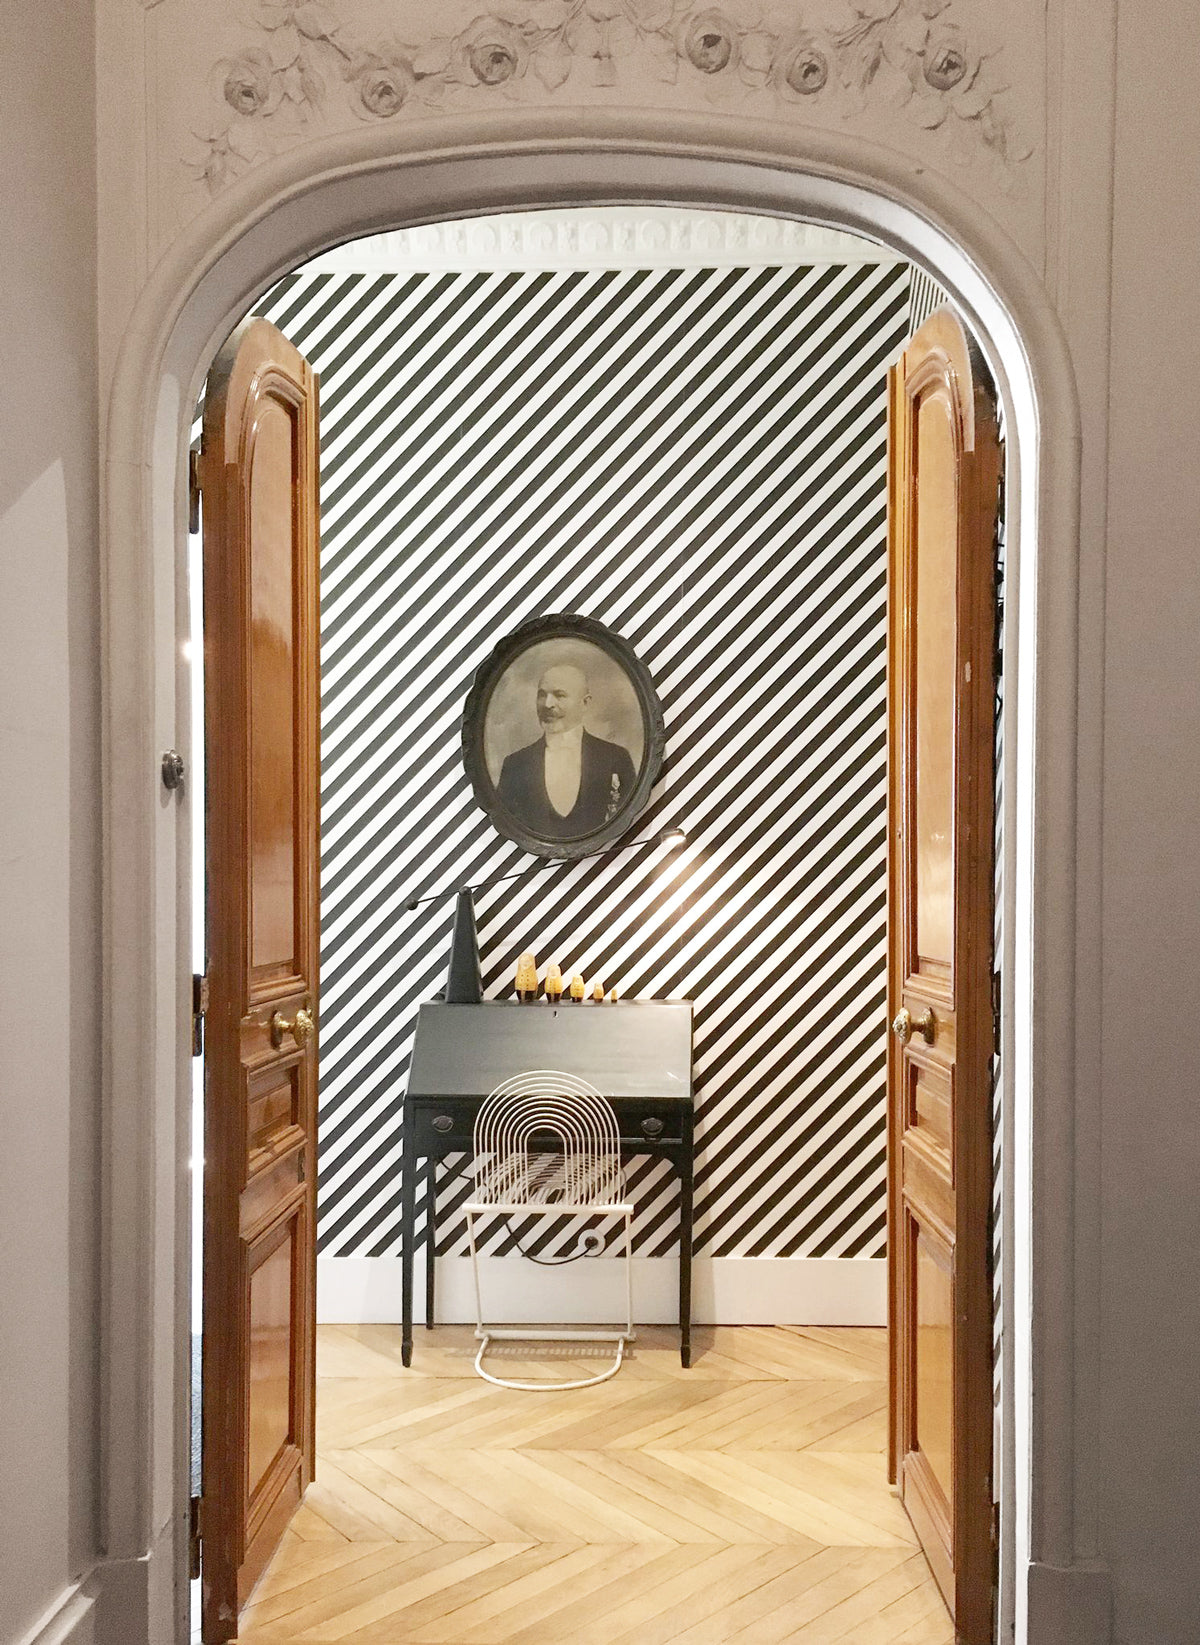 Eclectic Parisian apartment with geometric removable wallpaper and white crown molding